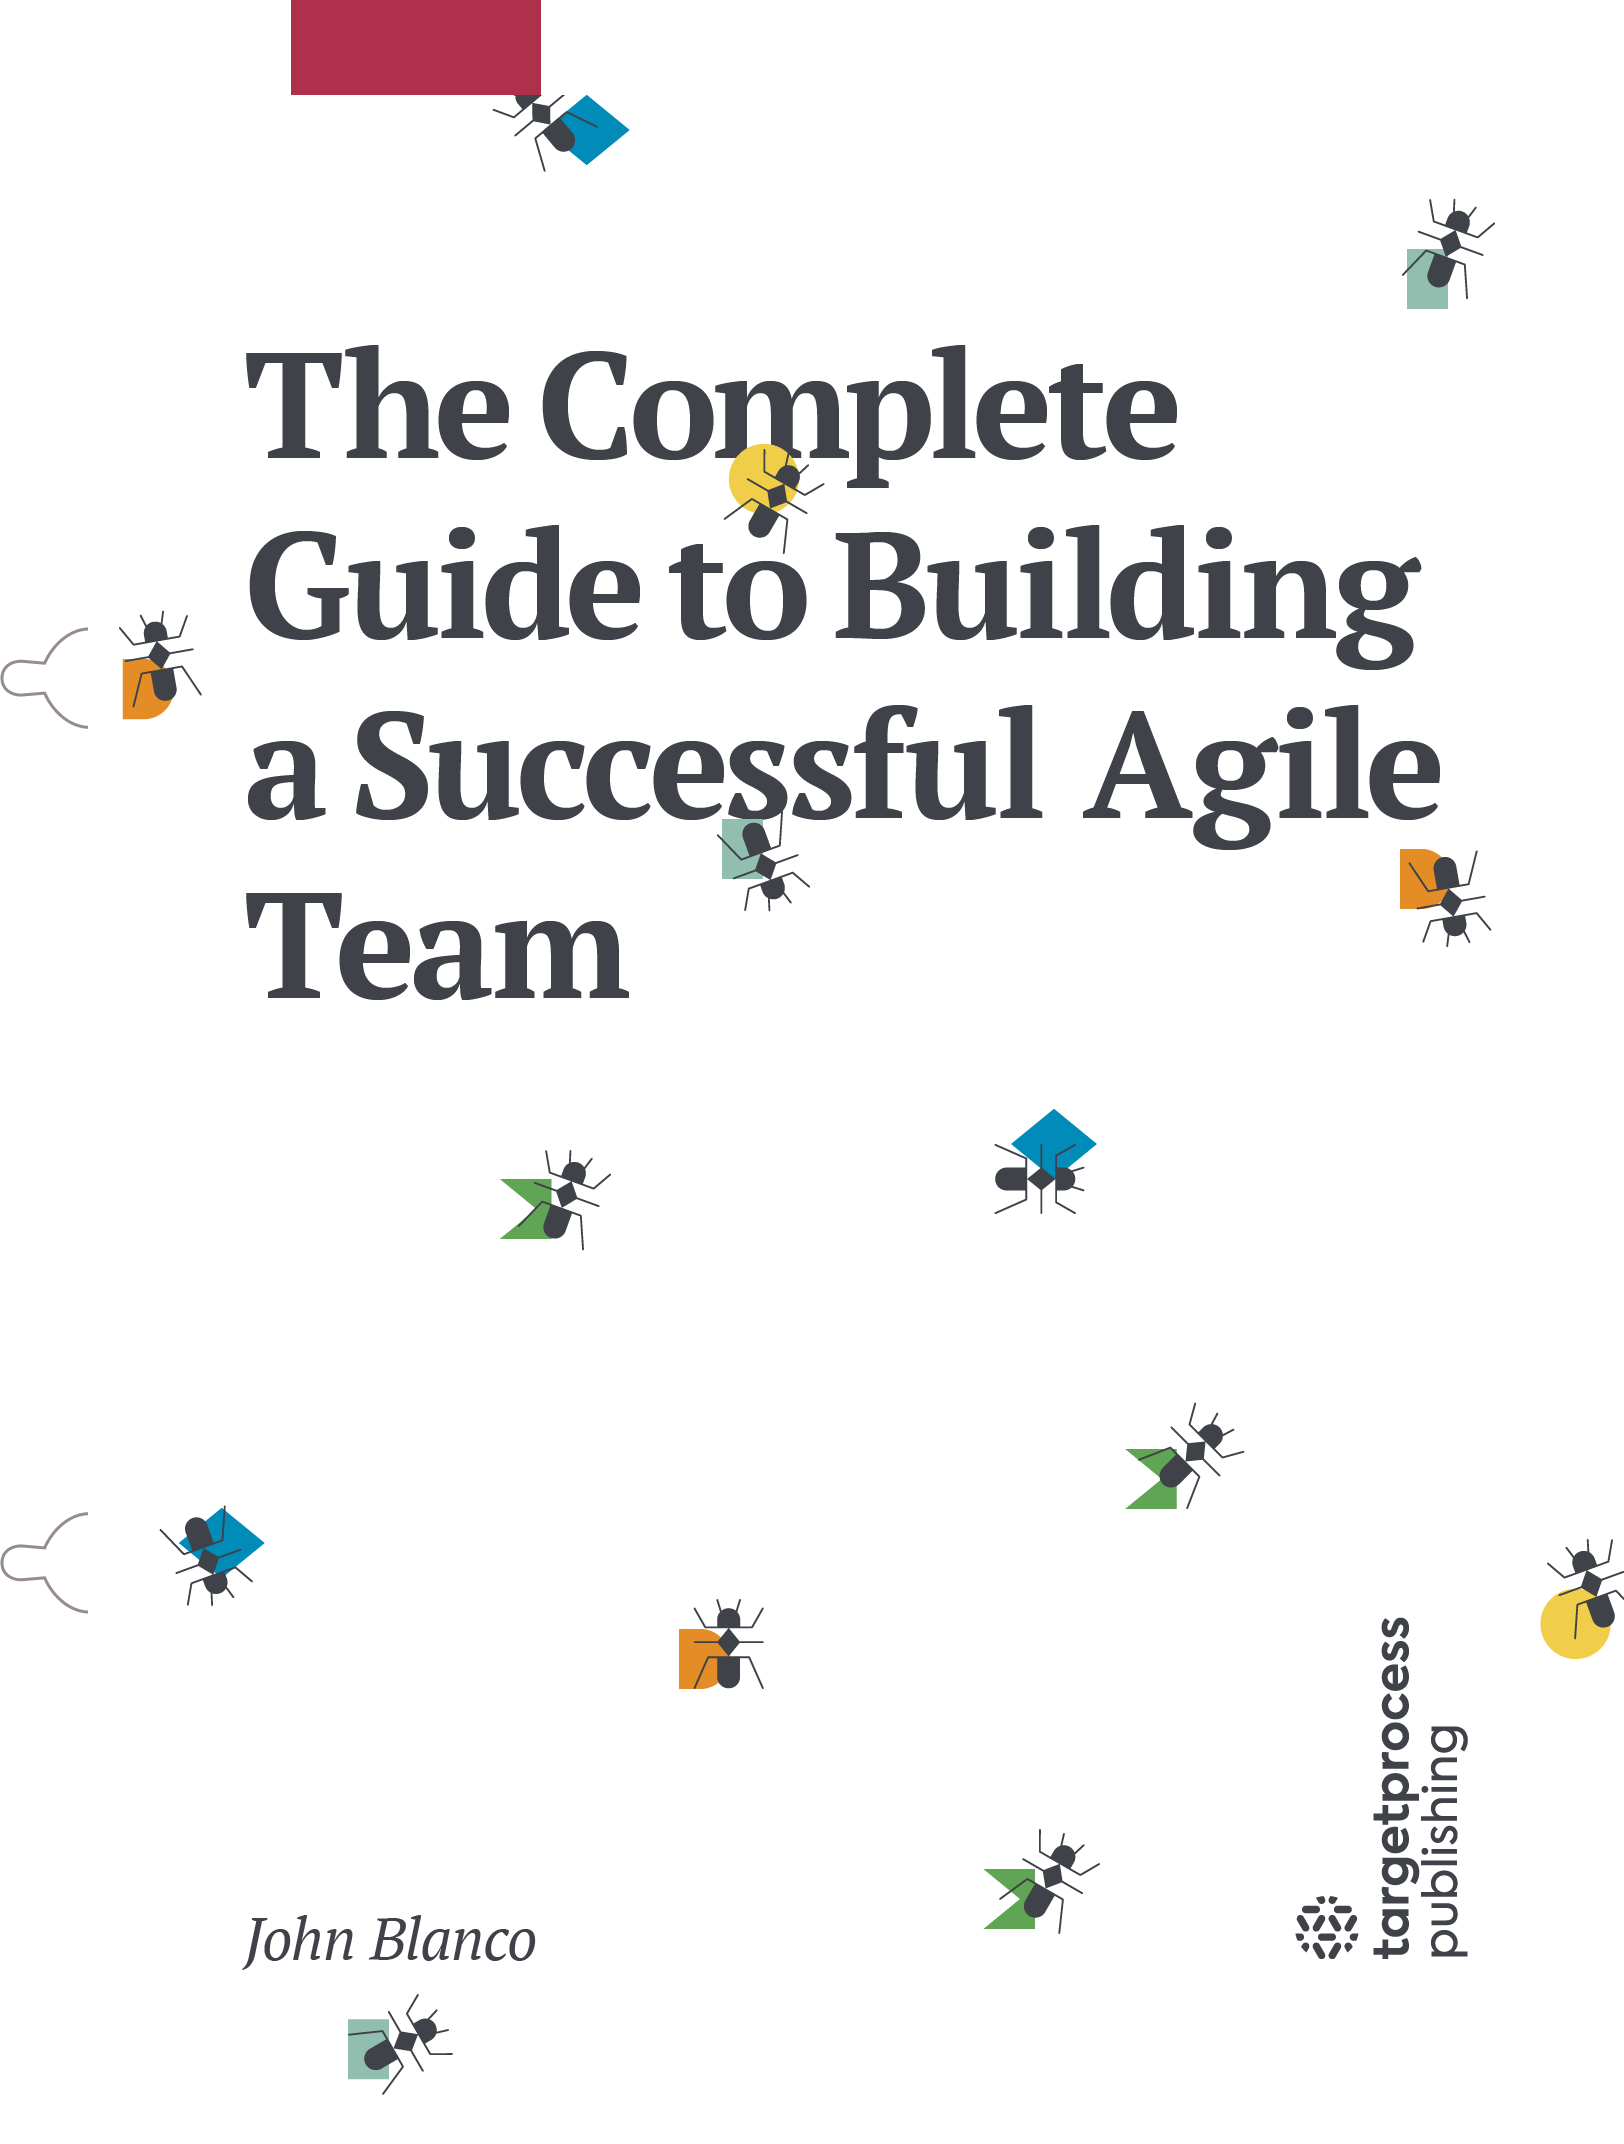 The Complete Guide to Building a Successful Agile Team